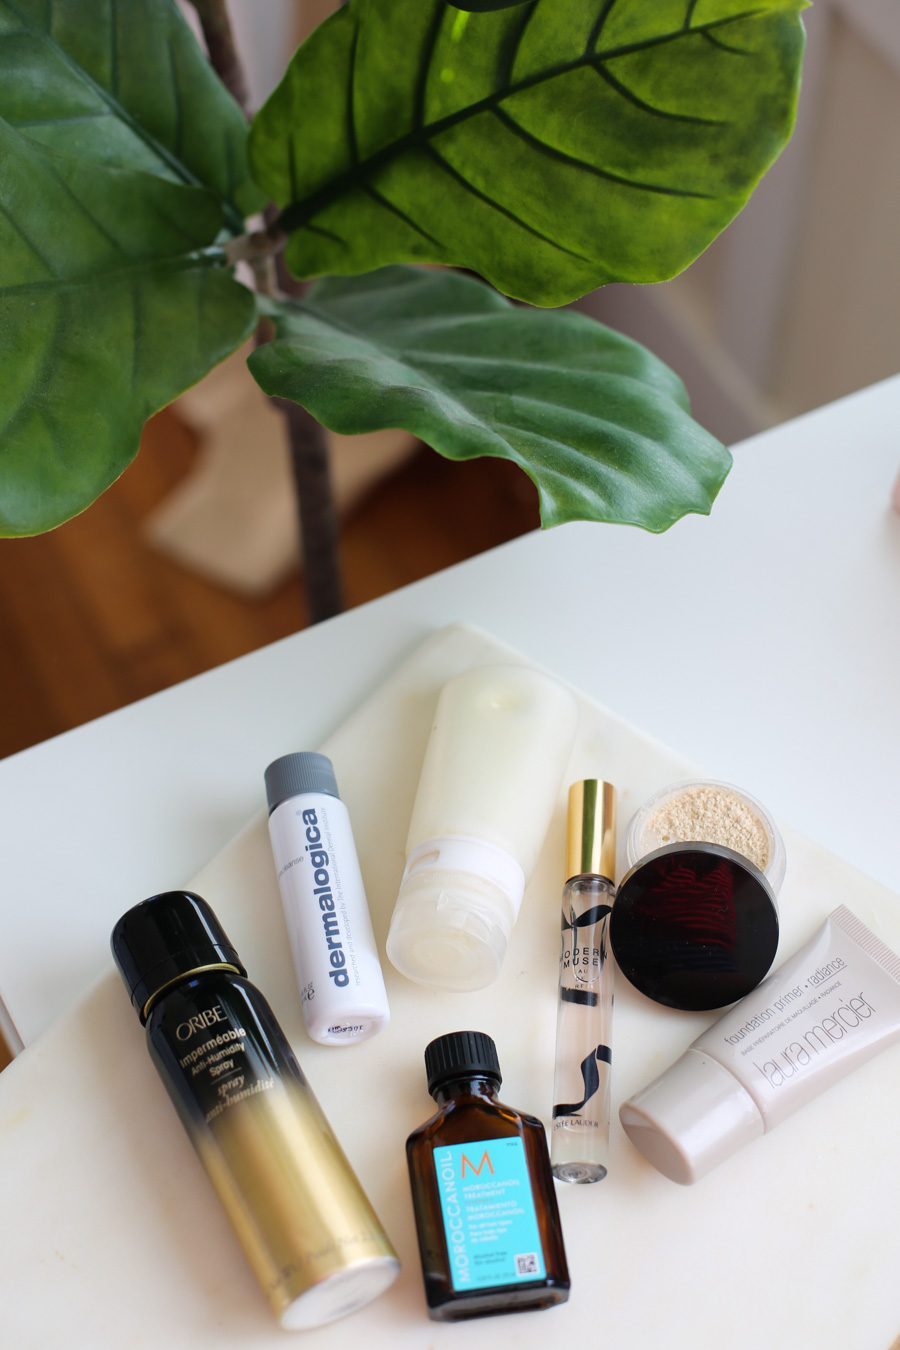 These travel tips for the best travel sized toiletries and travel size makeup will help you save room. See where to get the best travel makeup, travel size bottles, and the perfect little ways to downsize on your international travel. #travel